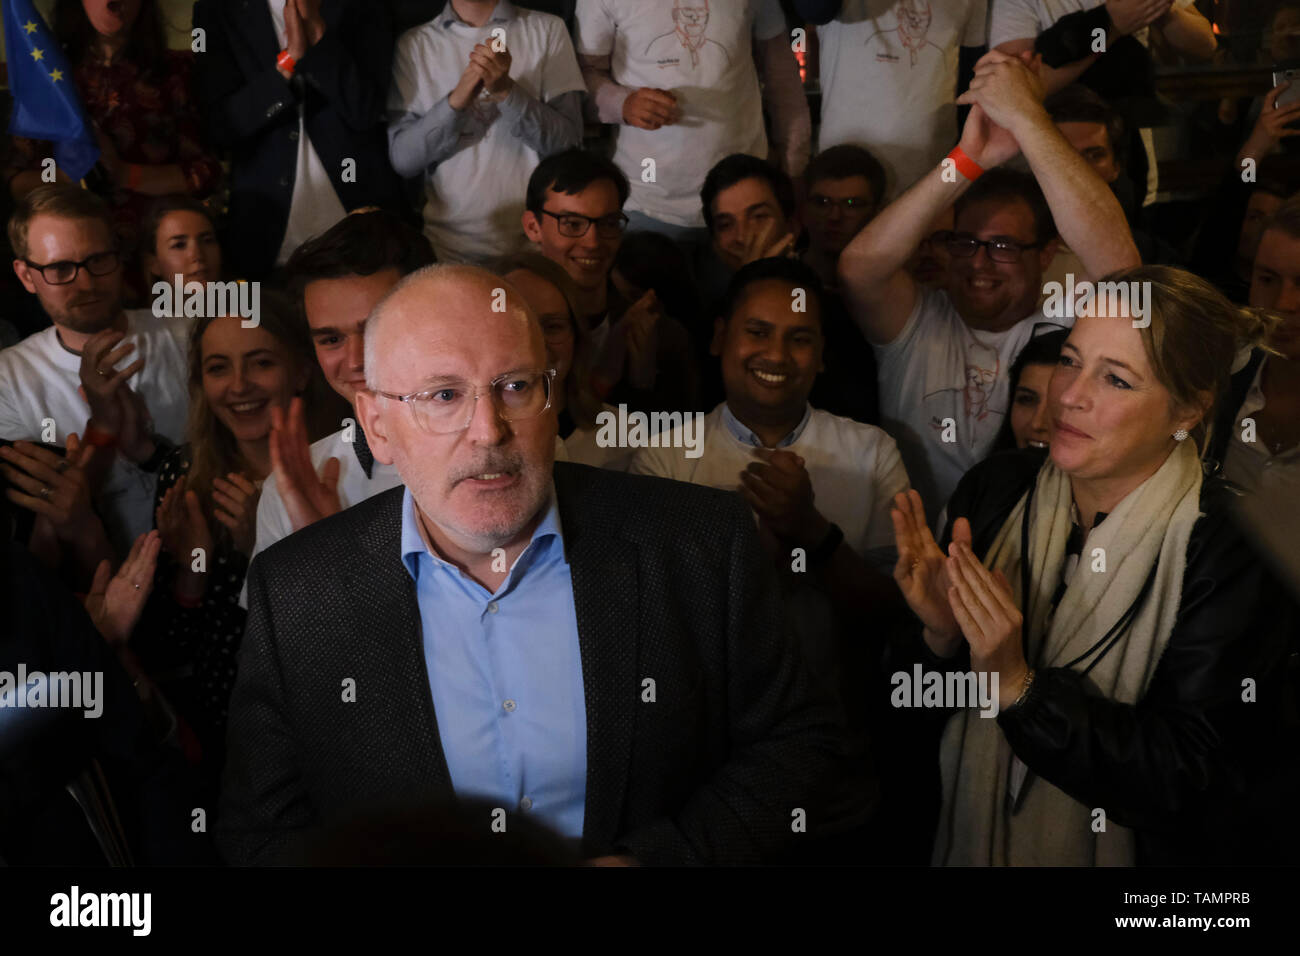 Brussels, Belgium. 26th May, 2019. Frans Timmermans, lead candidate of the Party of European Socialists (PES), speaks at the PES European elections headquarters. Credit: ALEXANDROS MICHAILIDIS/Alamy Live News - Stock Image